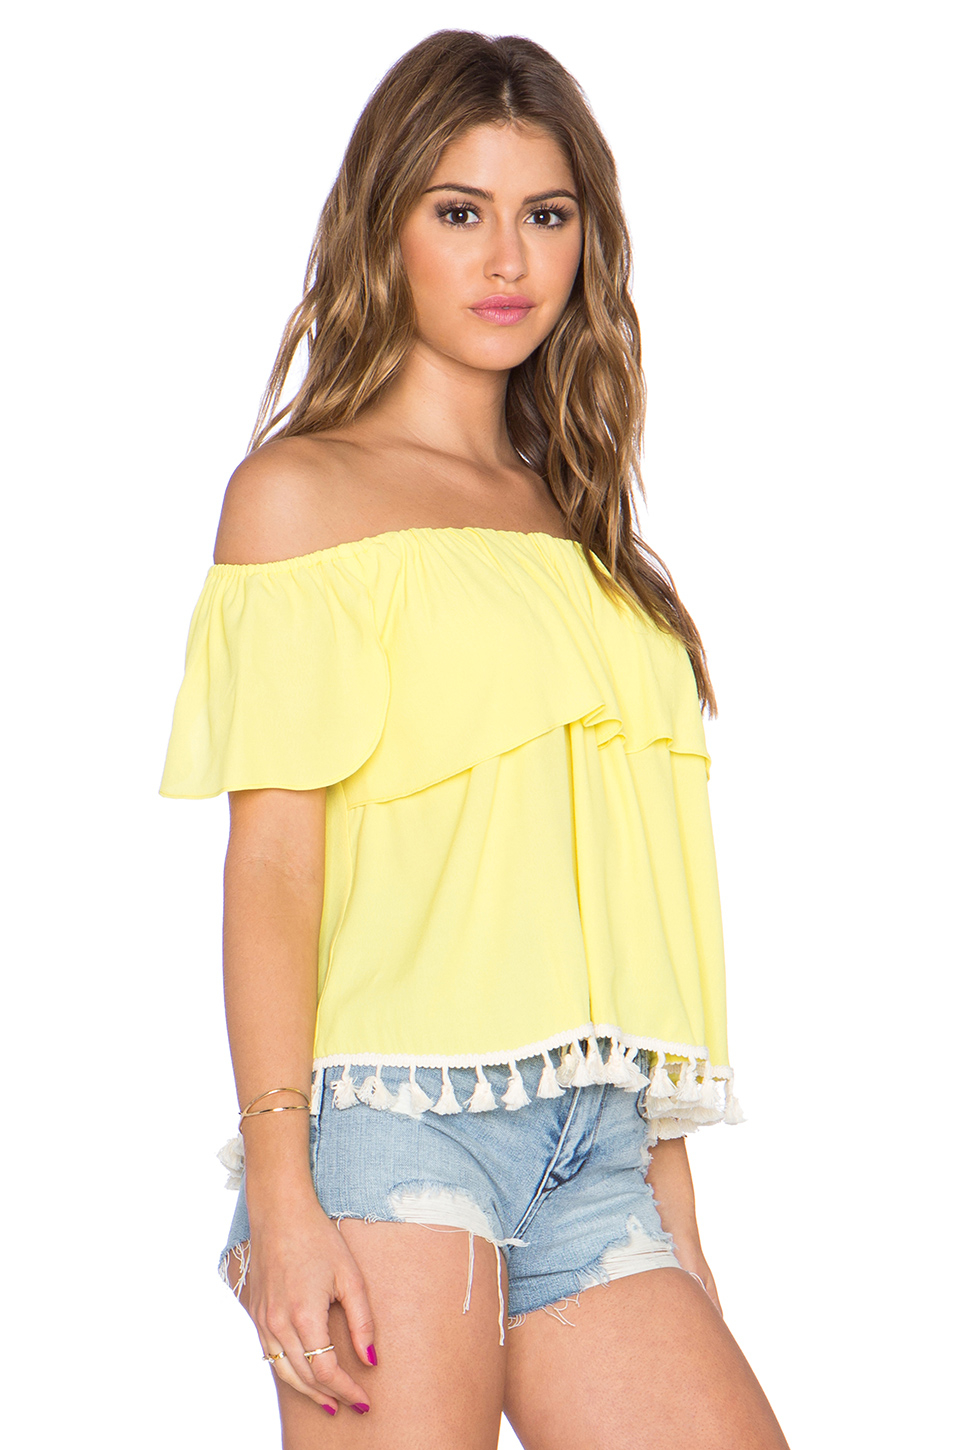 16c209f8d41007 Lyst - T-bags Off The Shoulder Top in Yellow